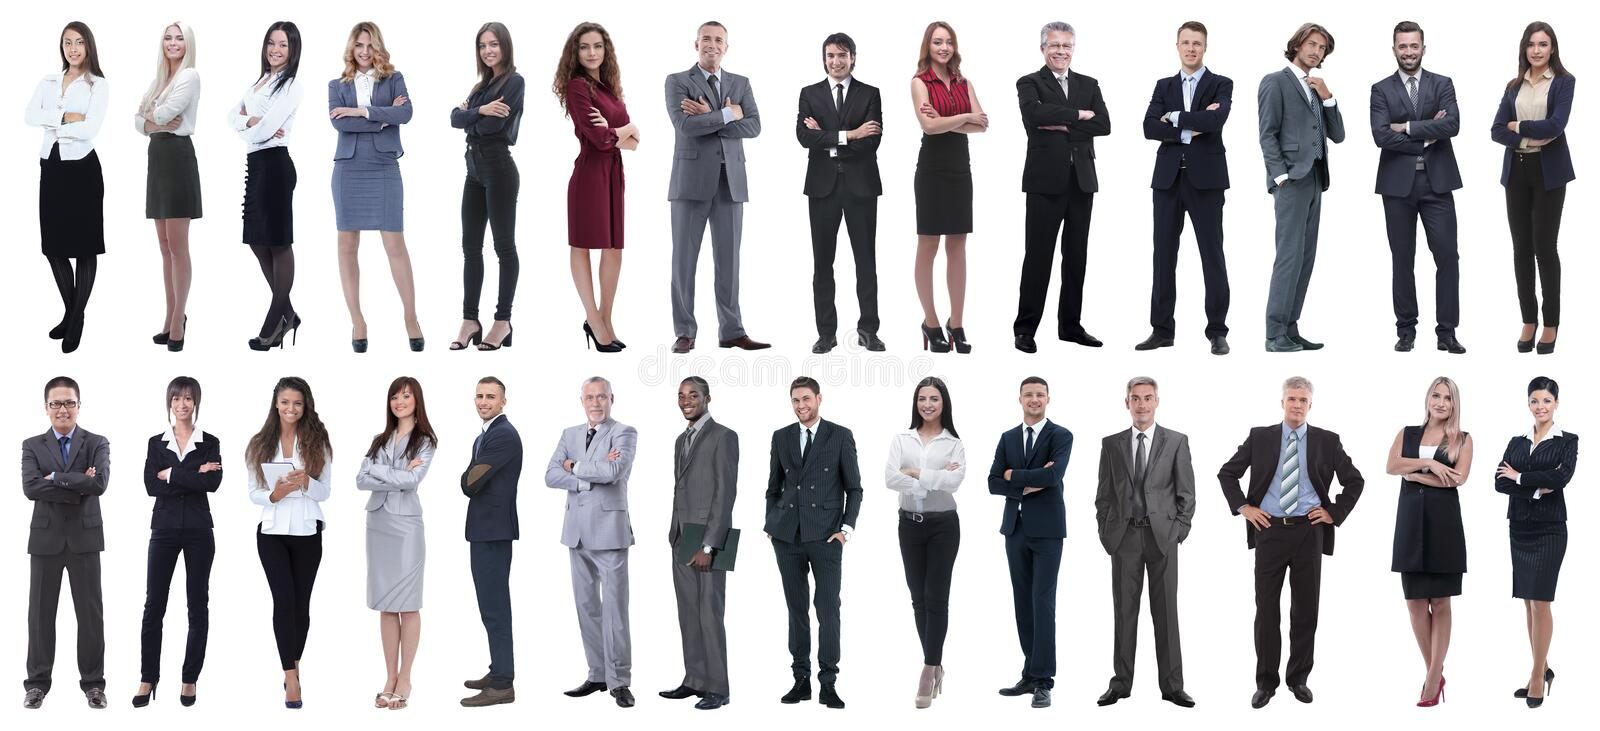 Successful business people isolated on white background royalty free stock images